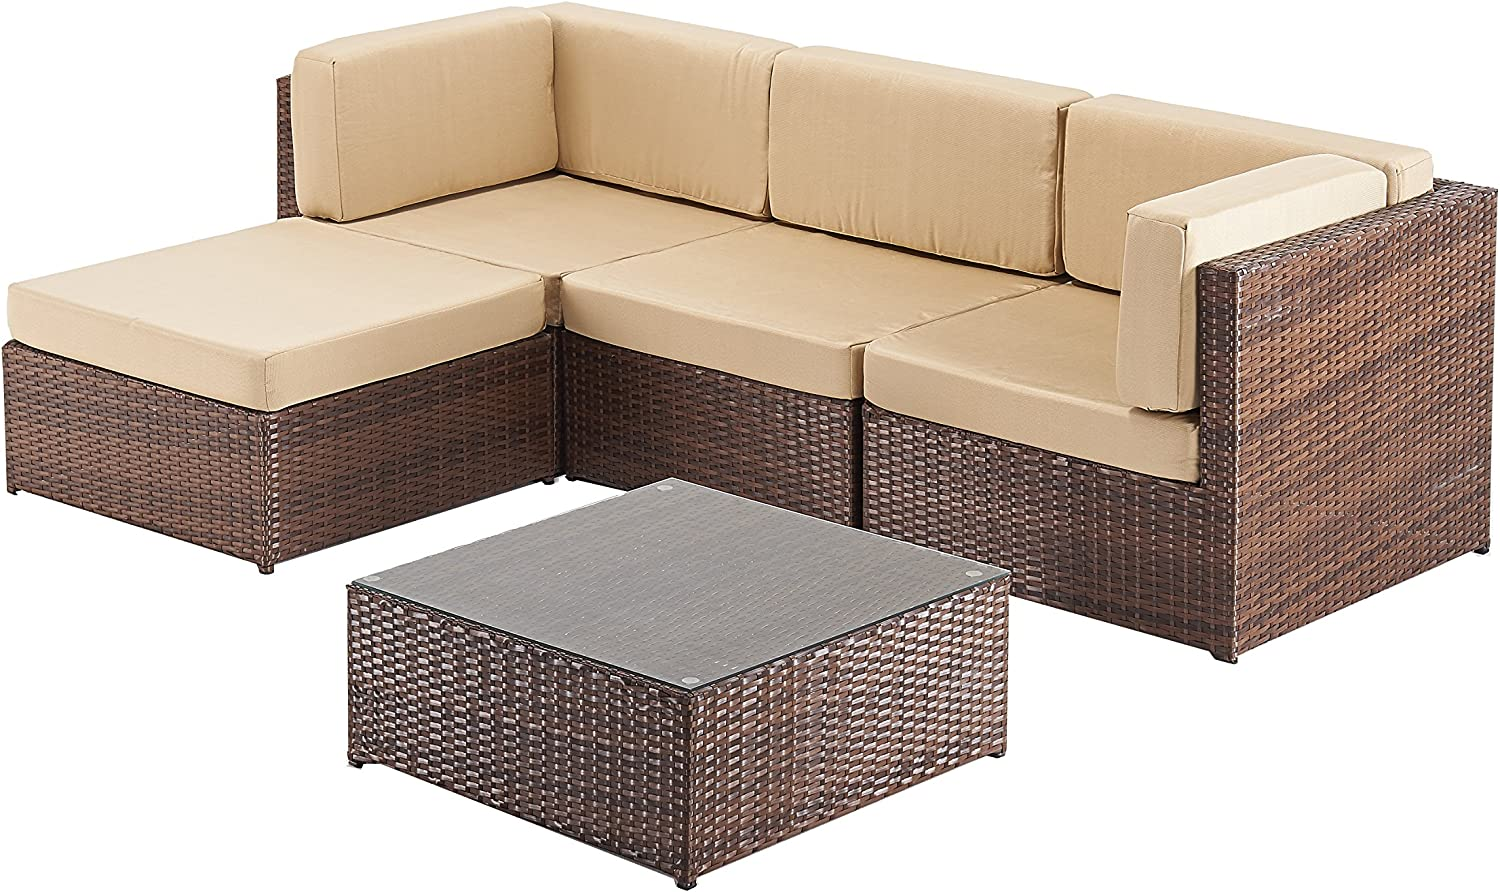 Rattan Garden Furniture Corner Sofa Suite, Ideal for Conservatory